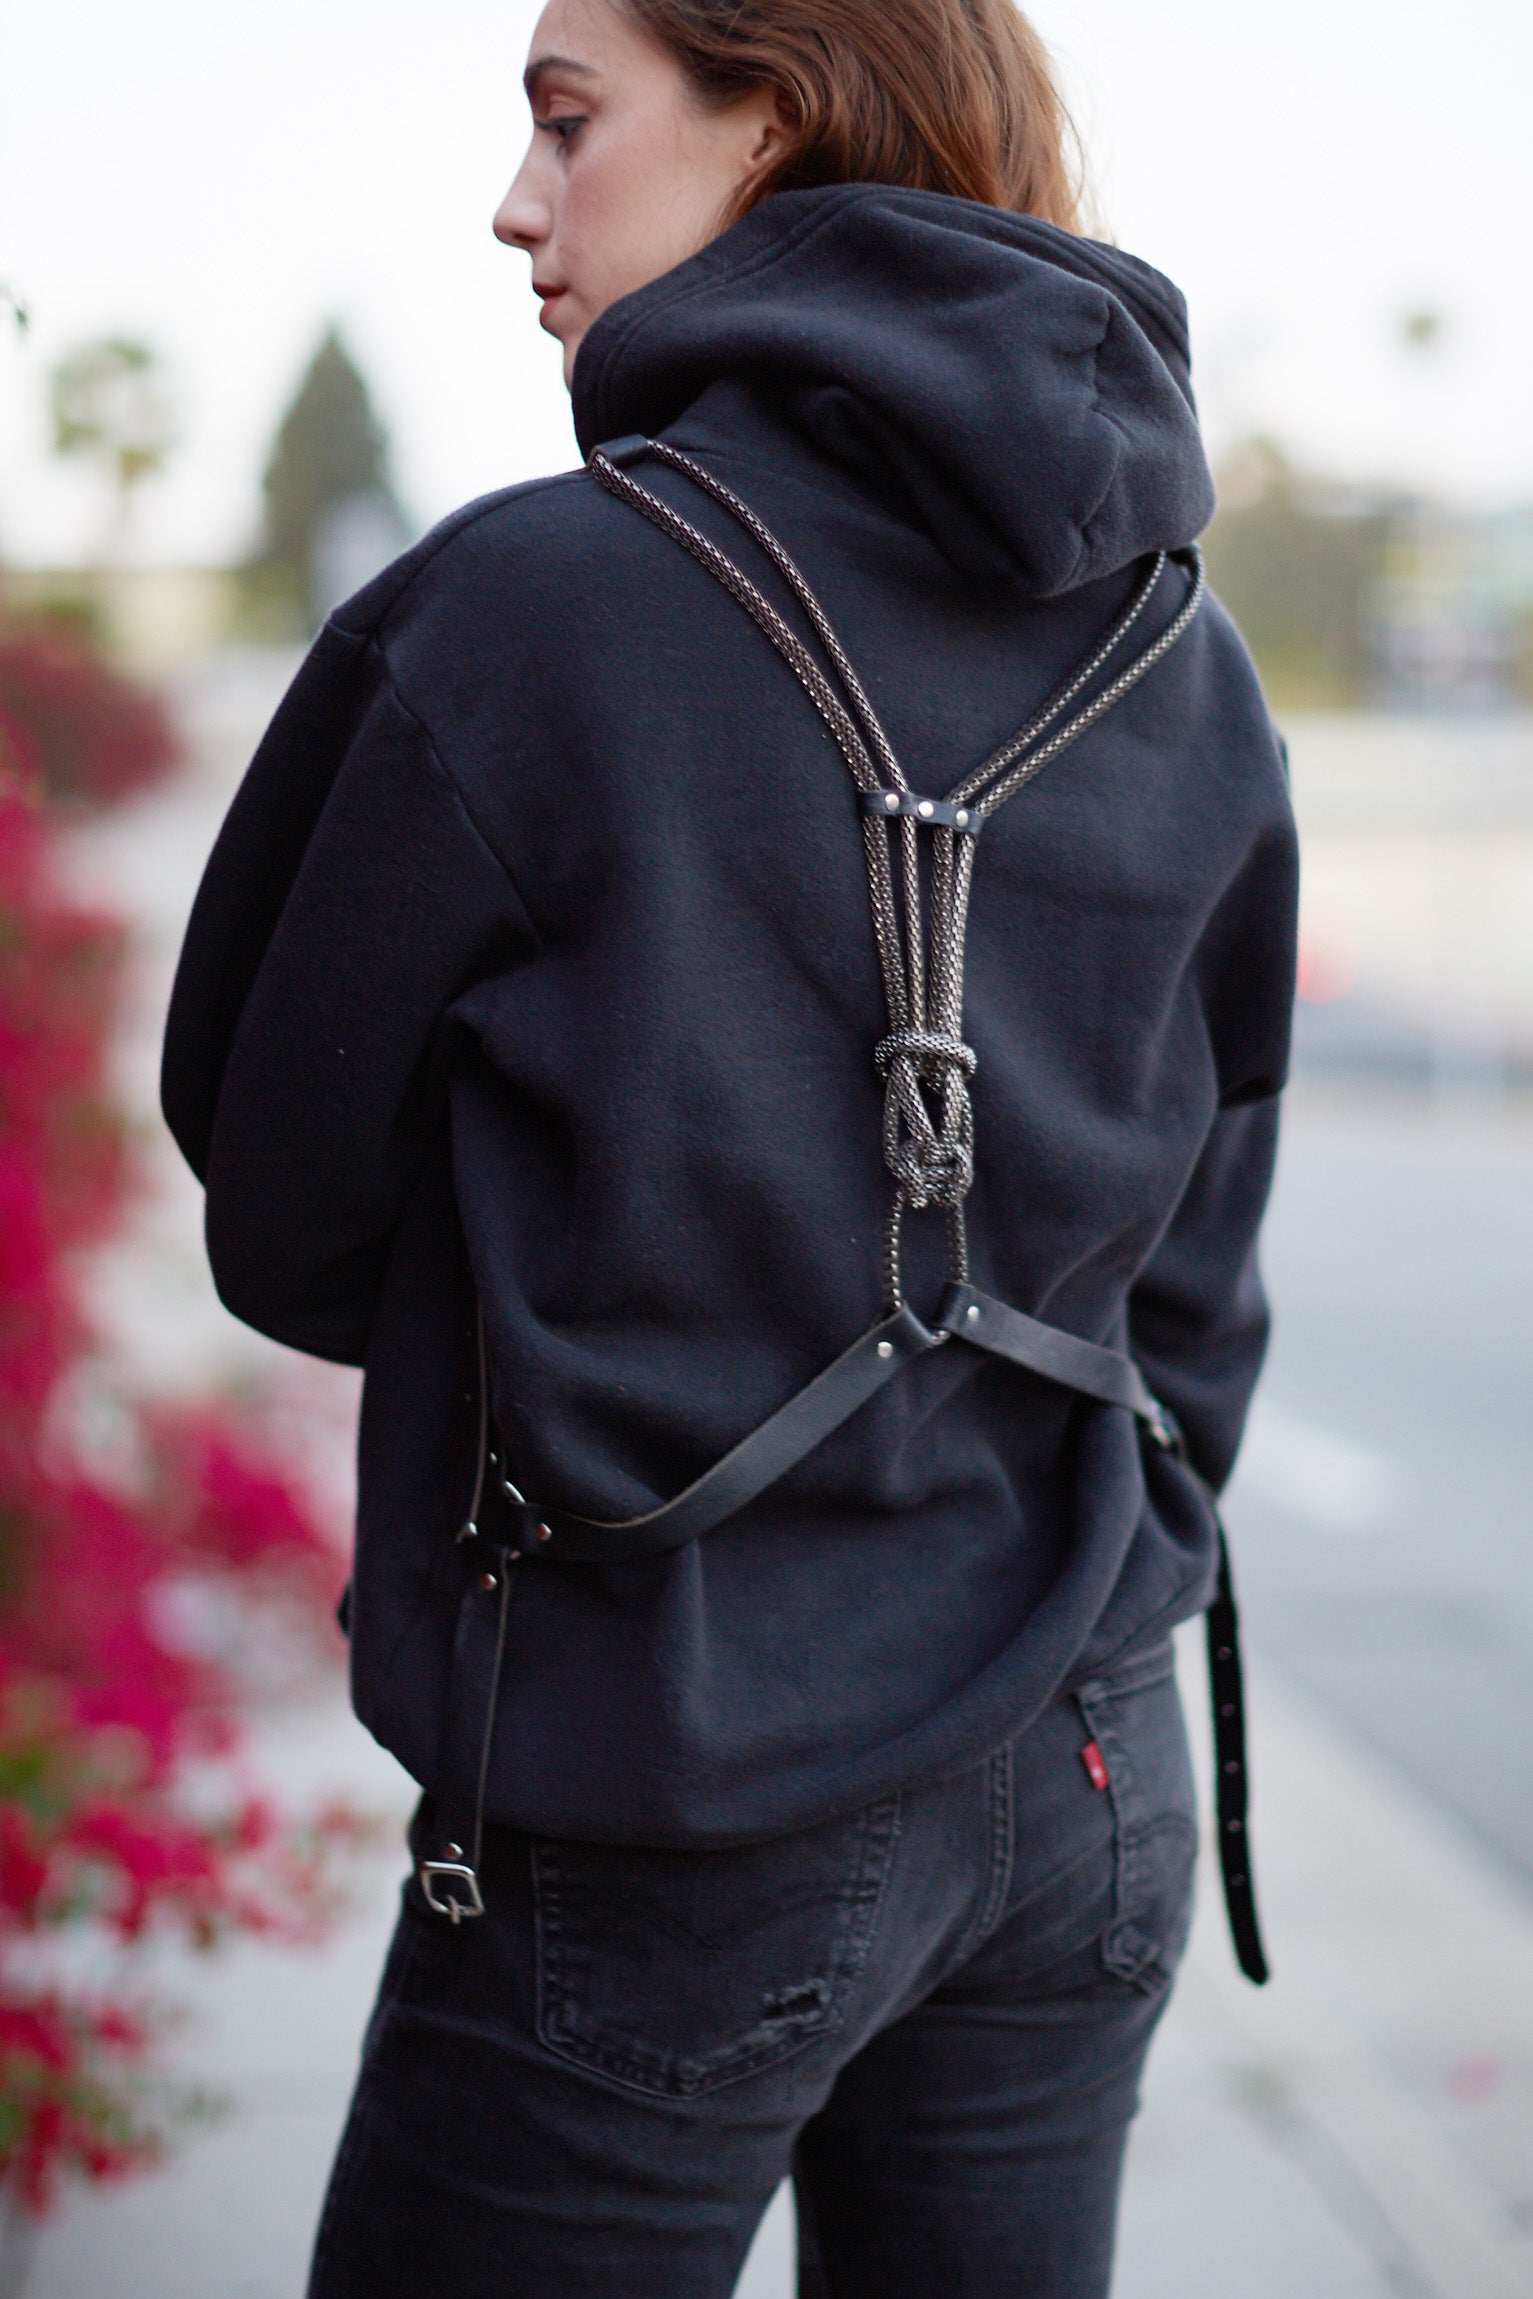 KNOT NORMAL BACK BELTED HARNESS